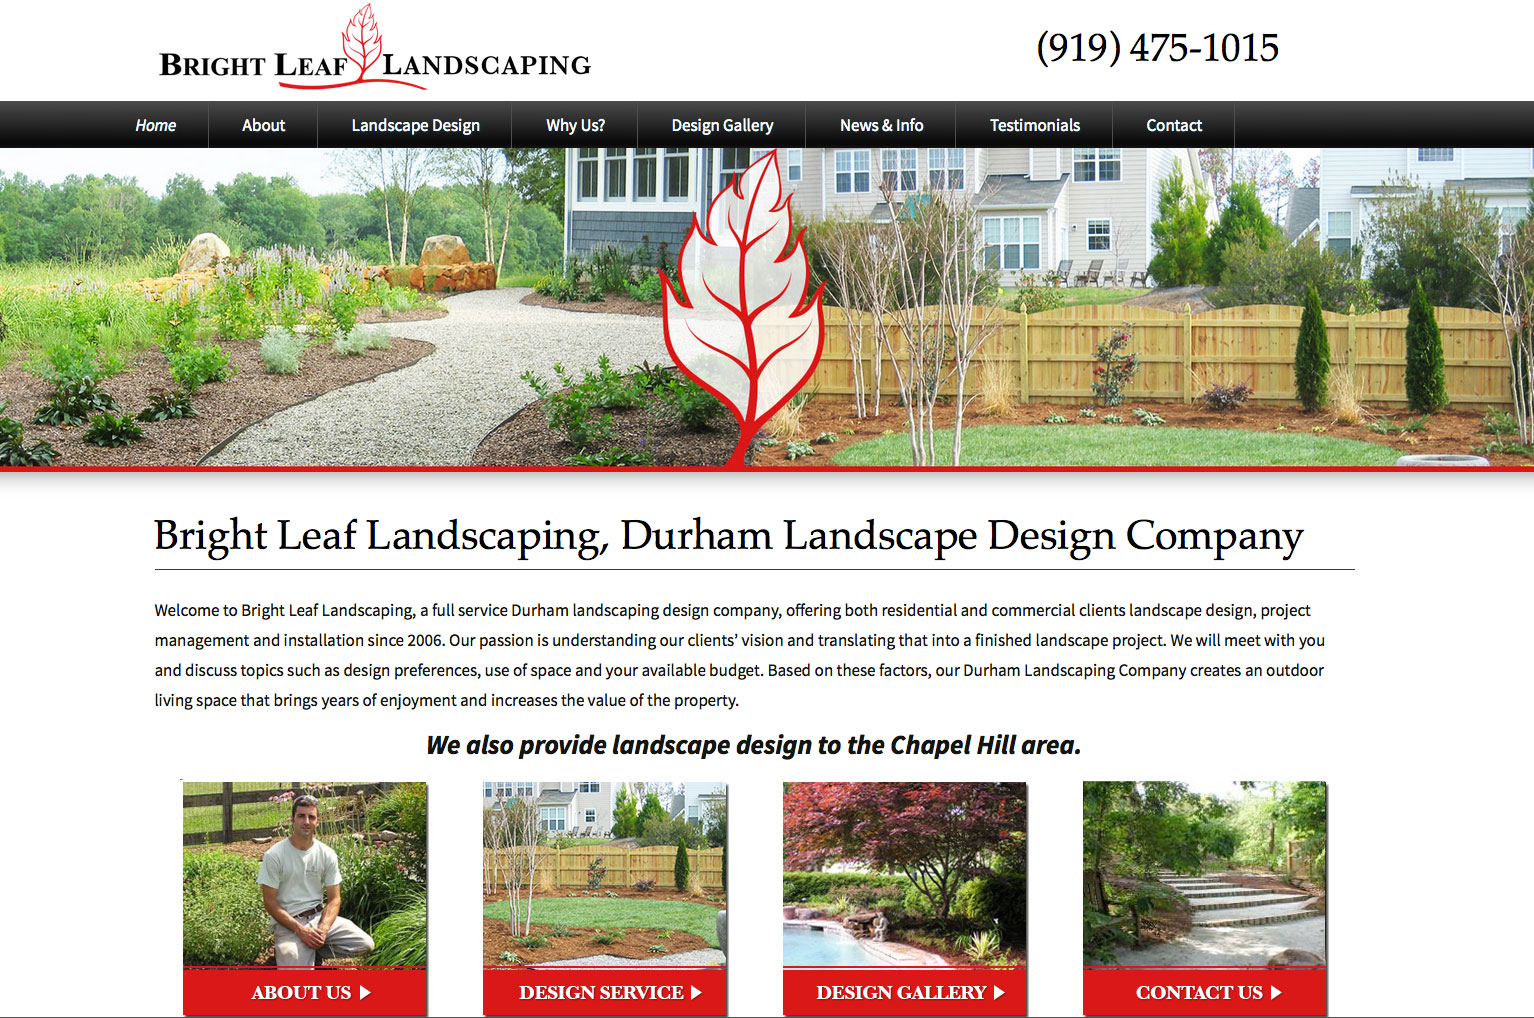 Brightleaf Landscaping